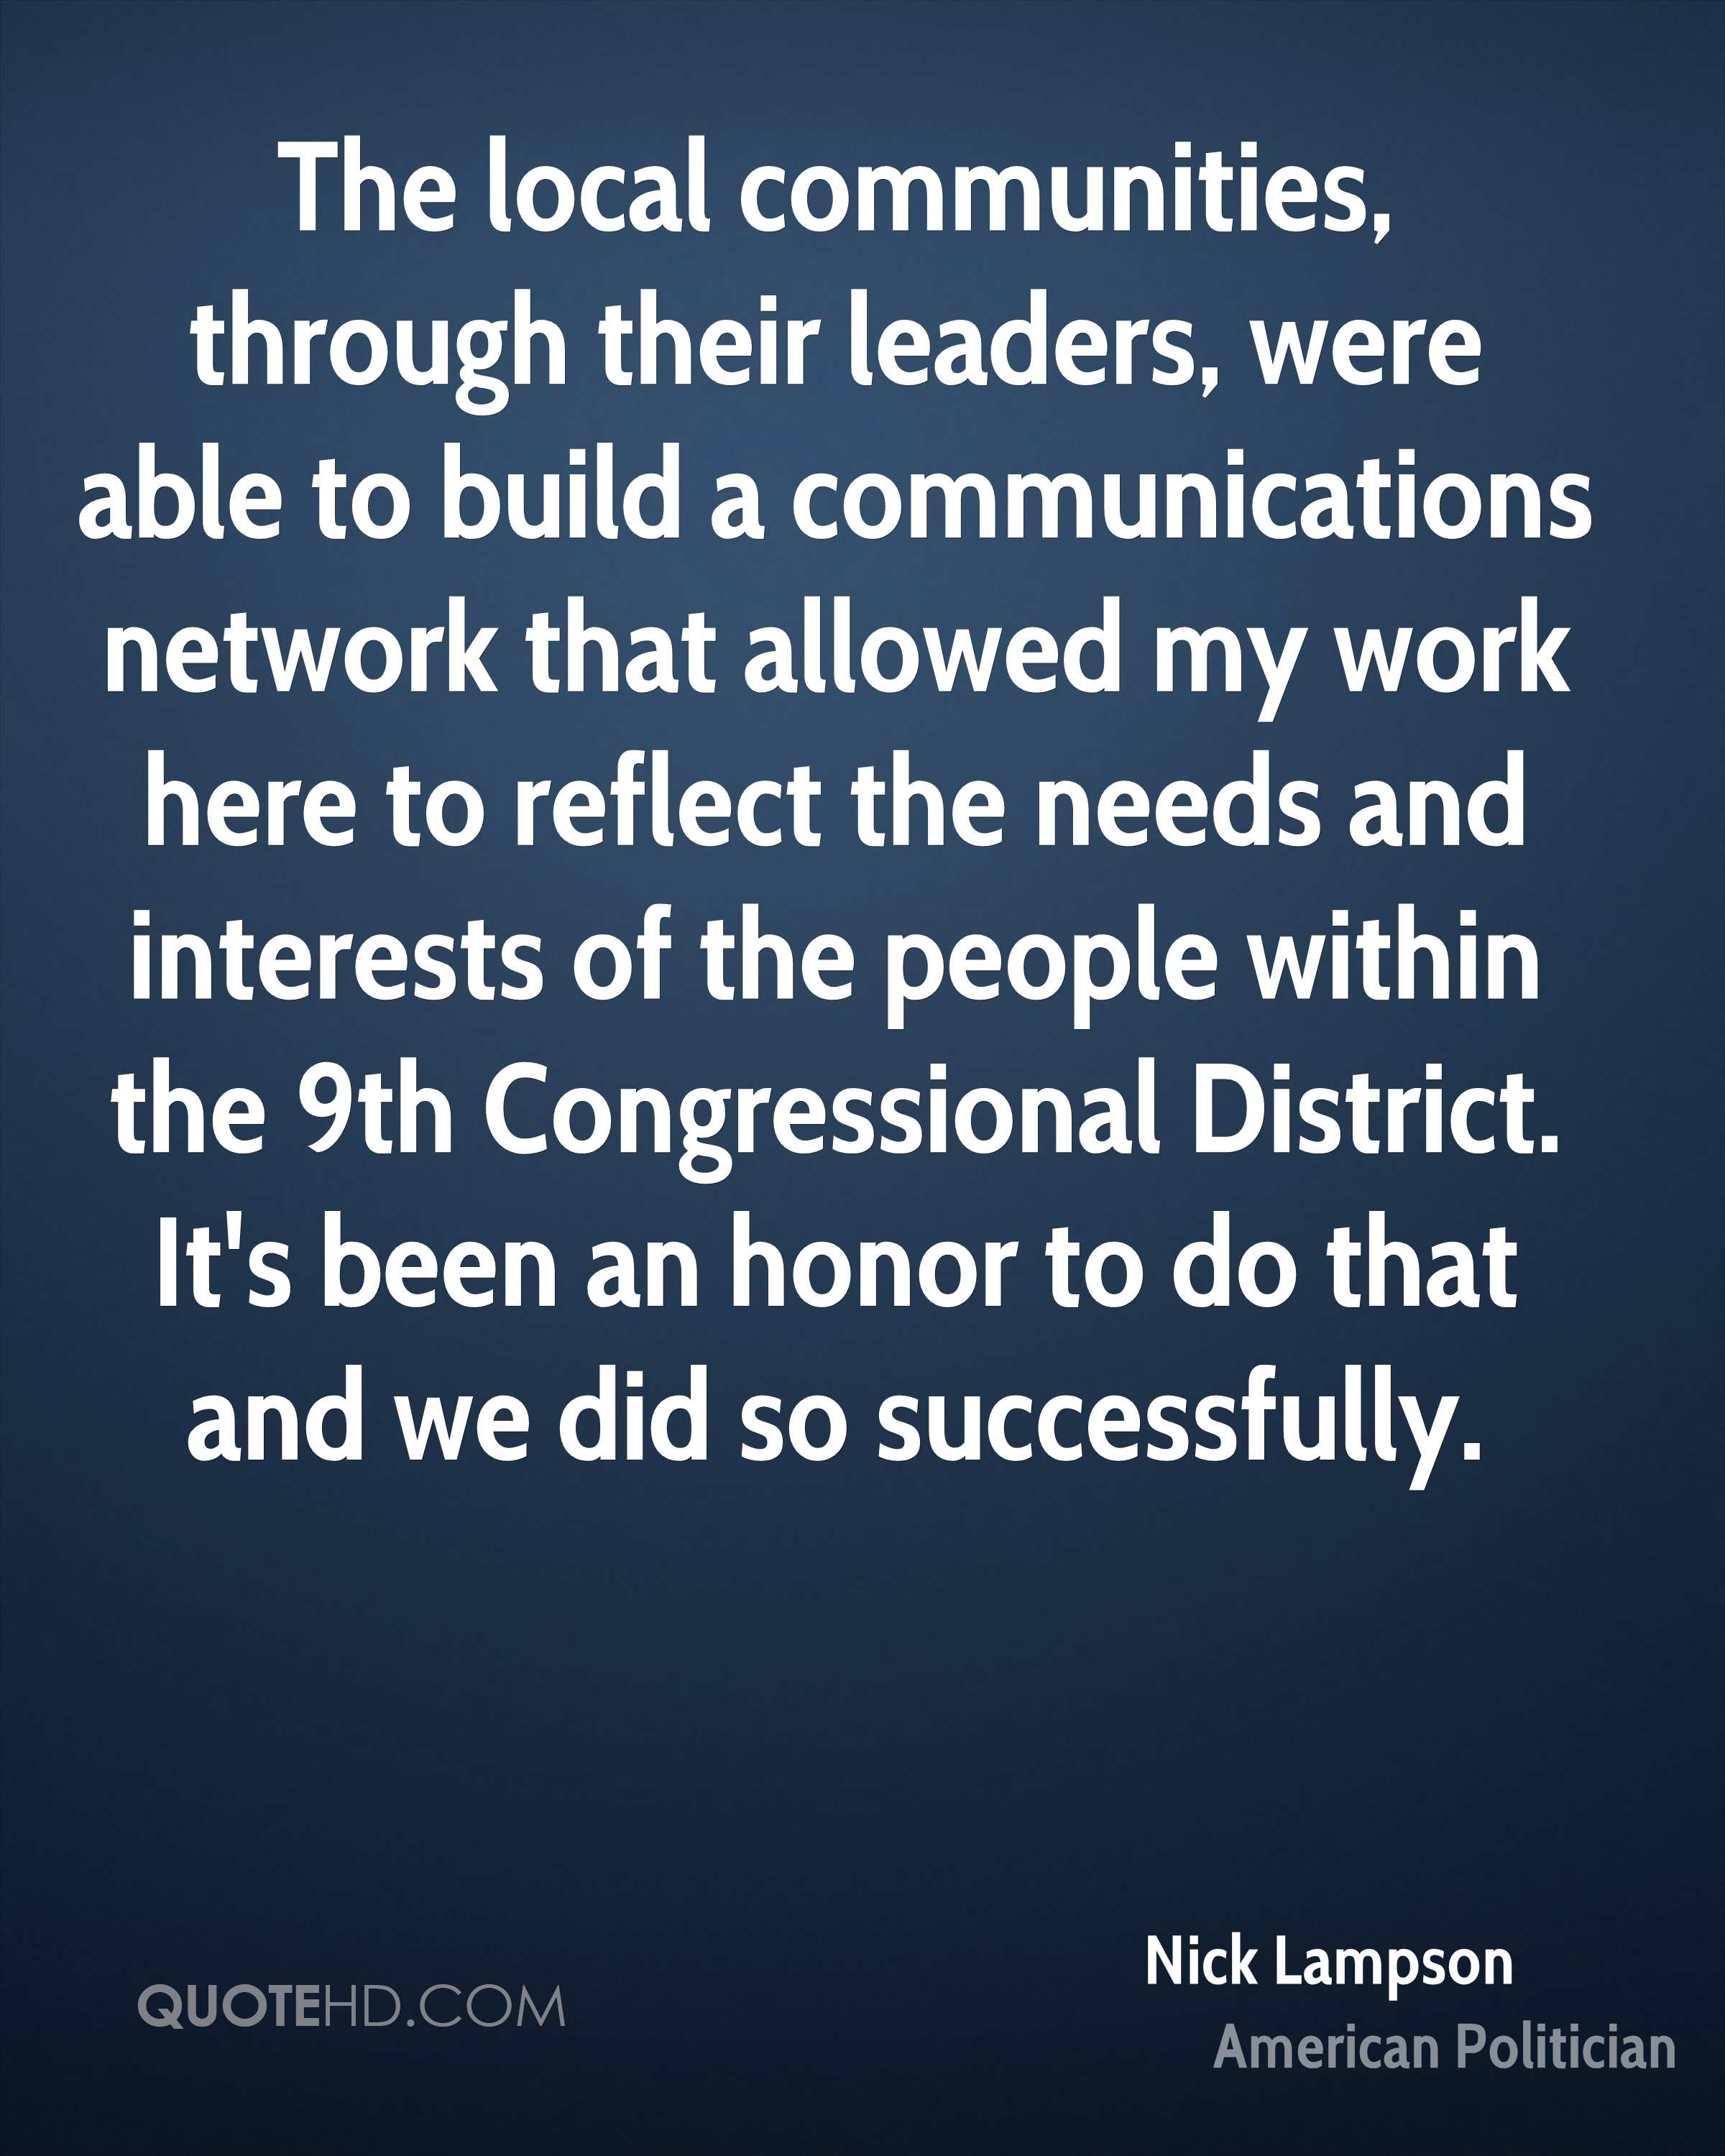 The local communities, through their leaders, were able to build a communications network that allowed my work here to reflect the needs and interests of the people within the 9th Congressional District. It's been an honor to do that and we did so successfully.